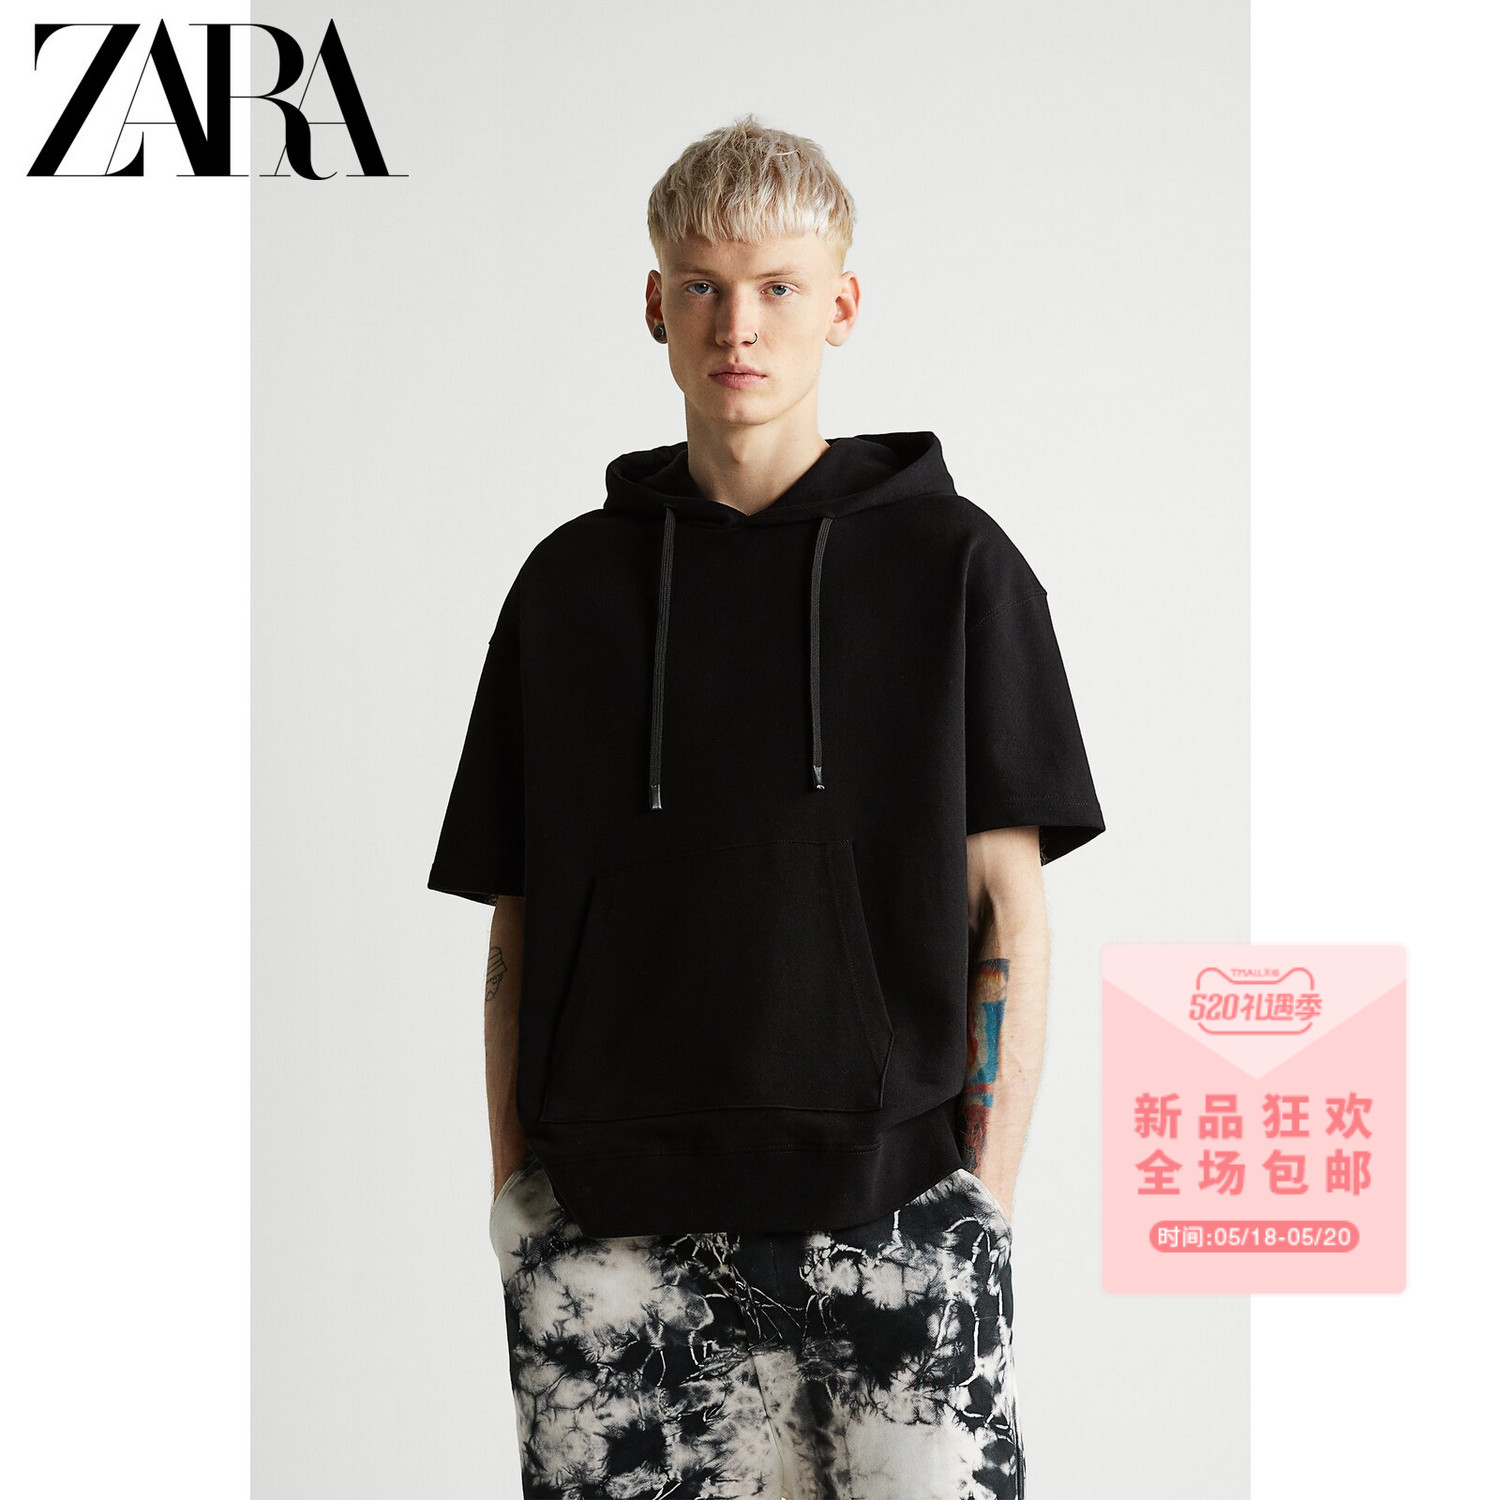 ZARA summer new men's short-sleeved hooded sweatshirt sweater sweater 04087464800